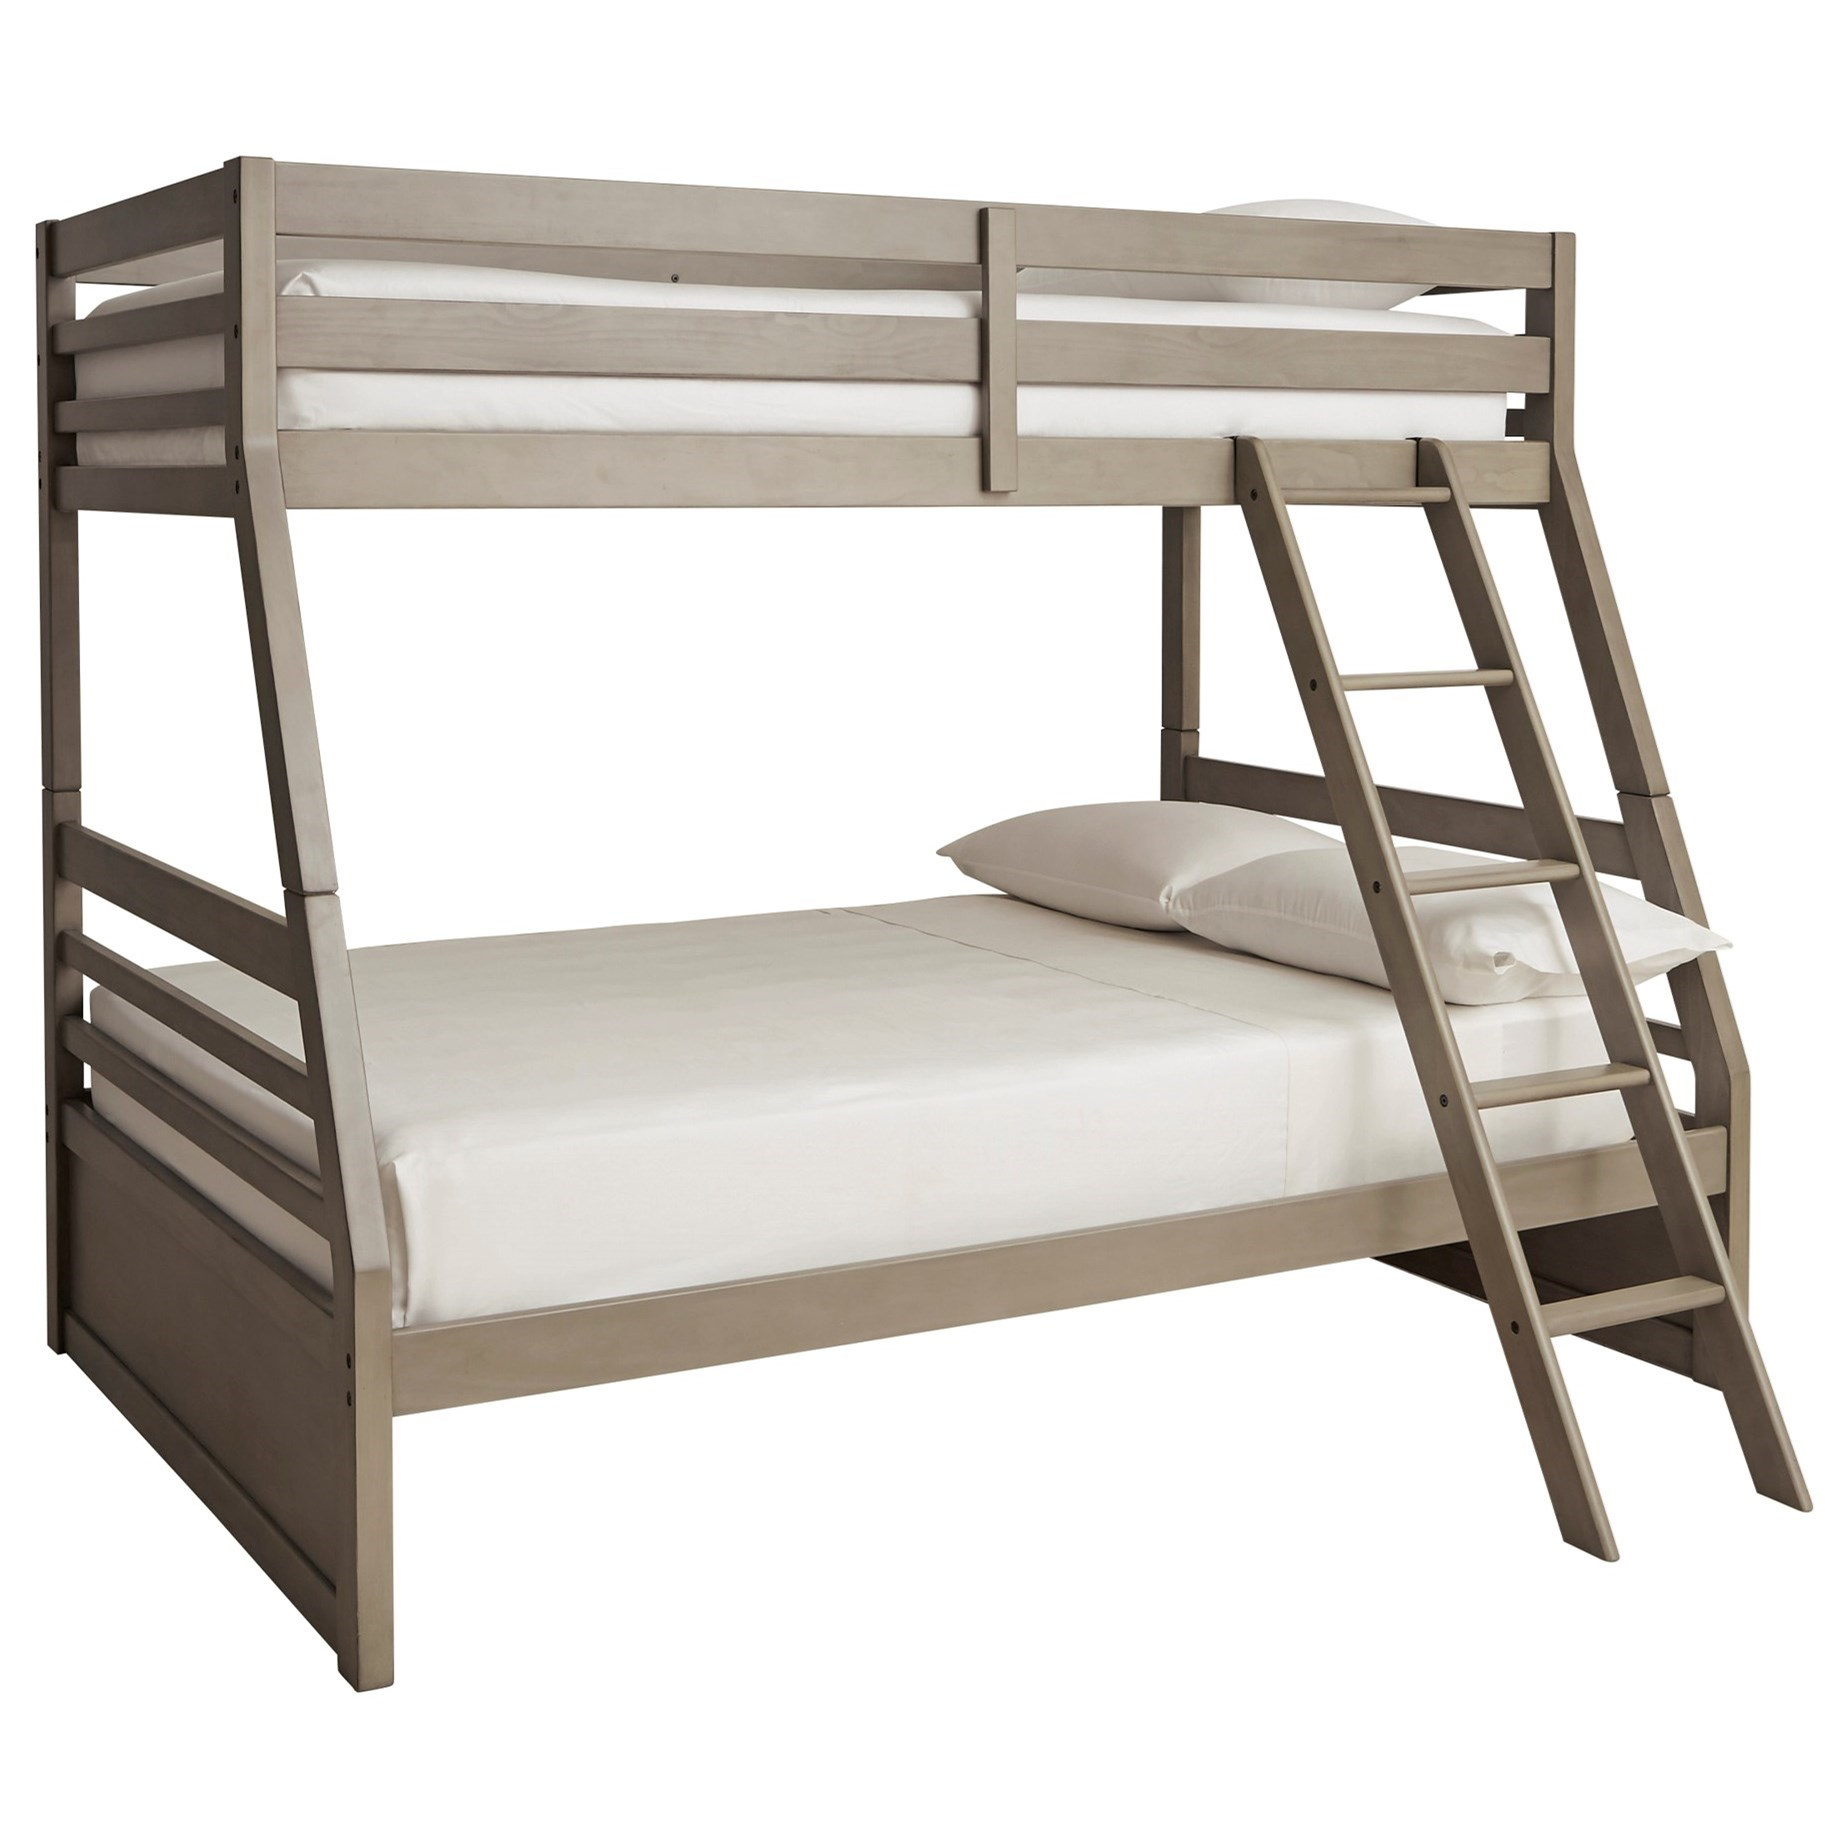 Picture of: Signature Design By Ashley Lettner Twin Full Bunk Bed Standard Furniture Bunk Beds